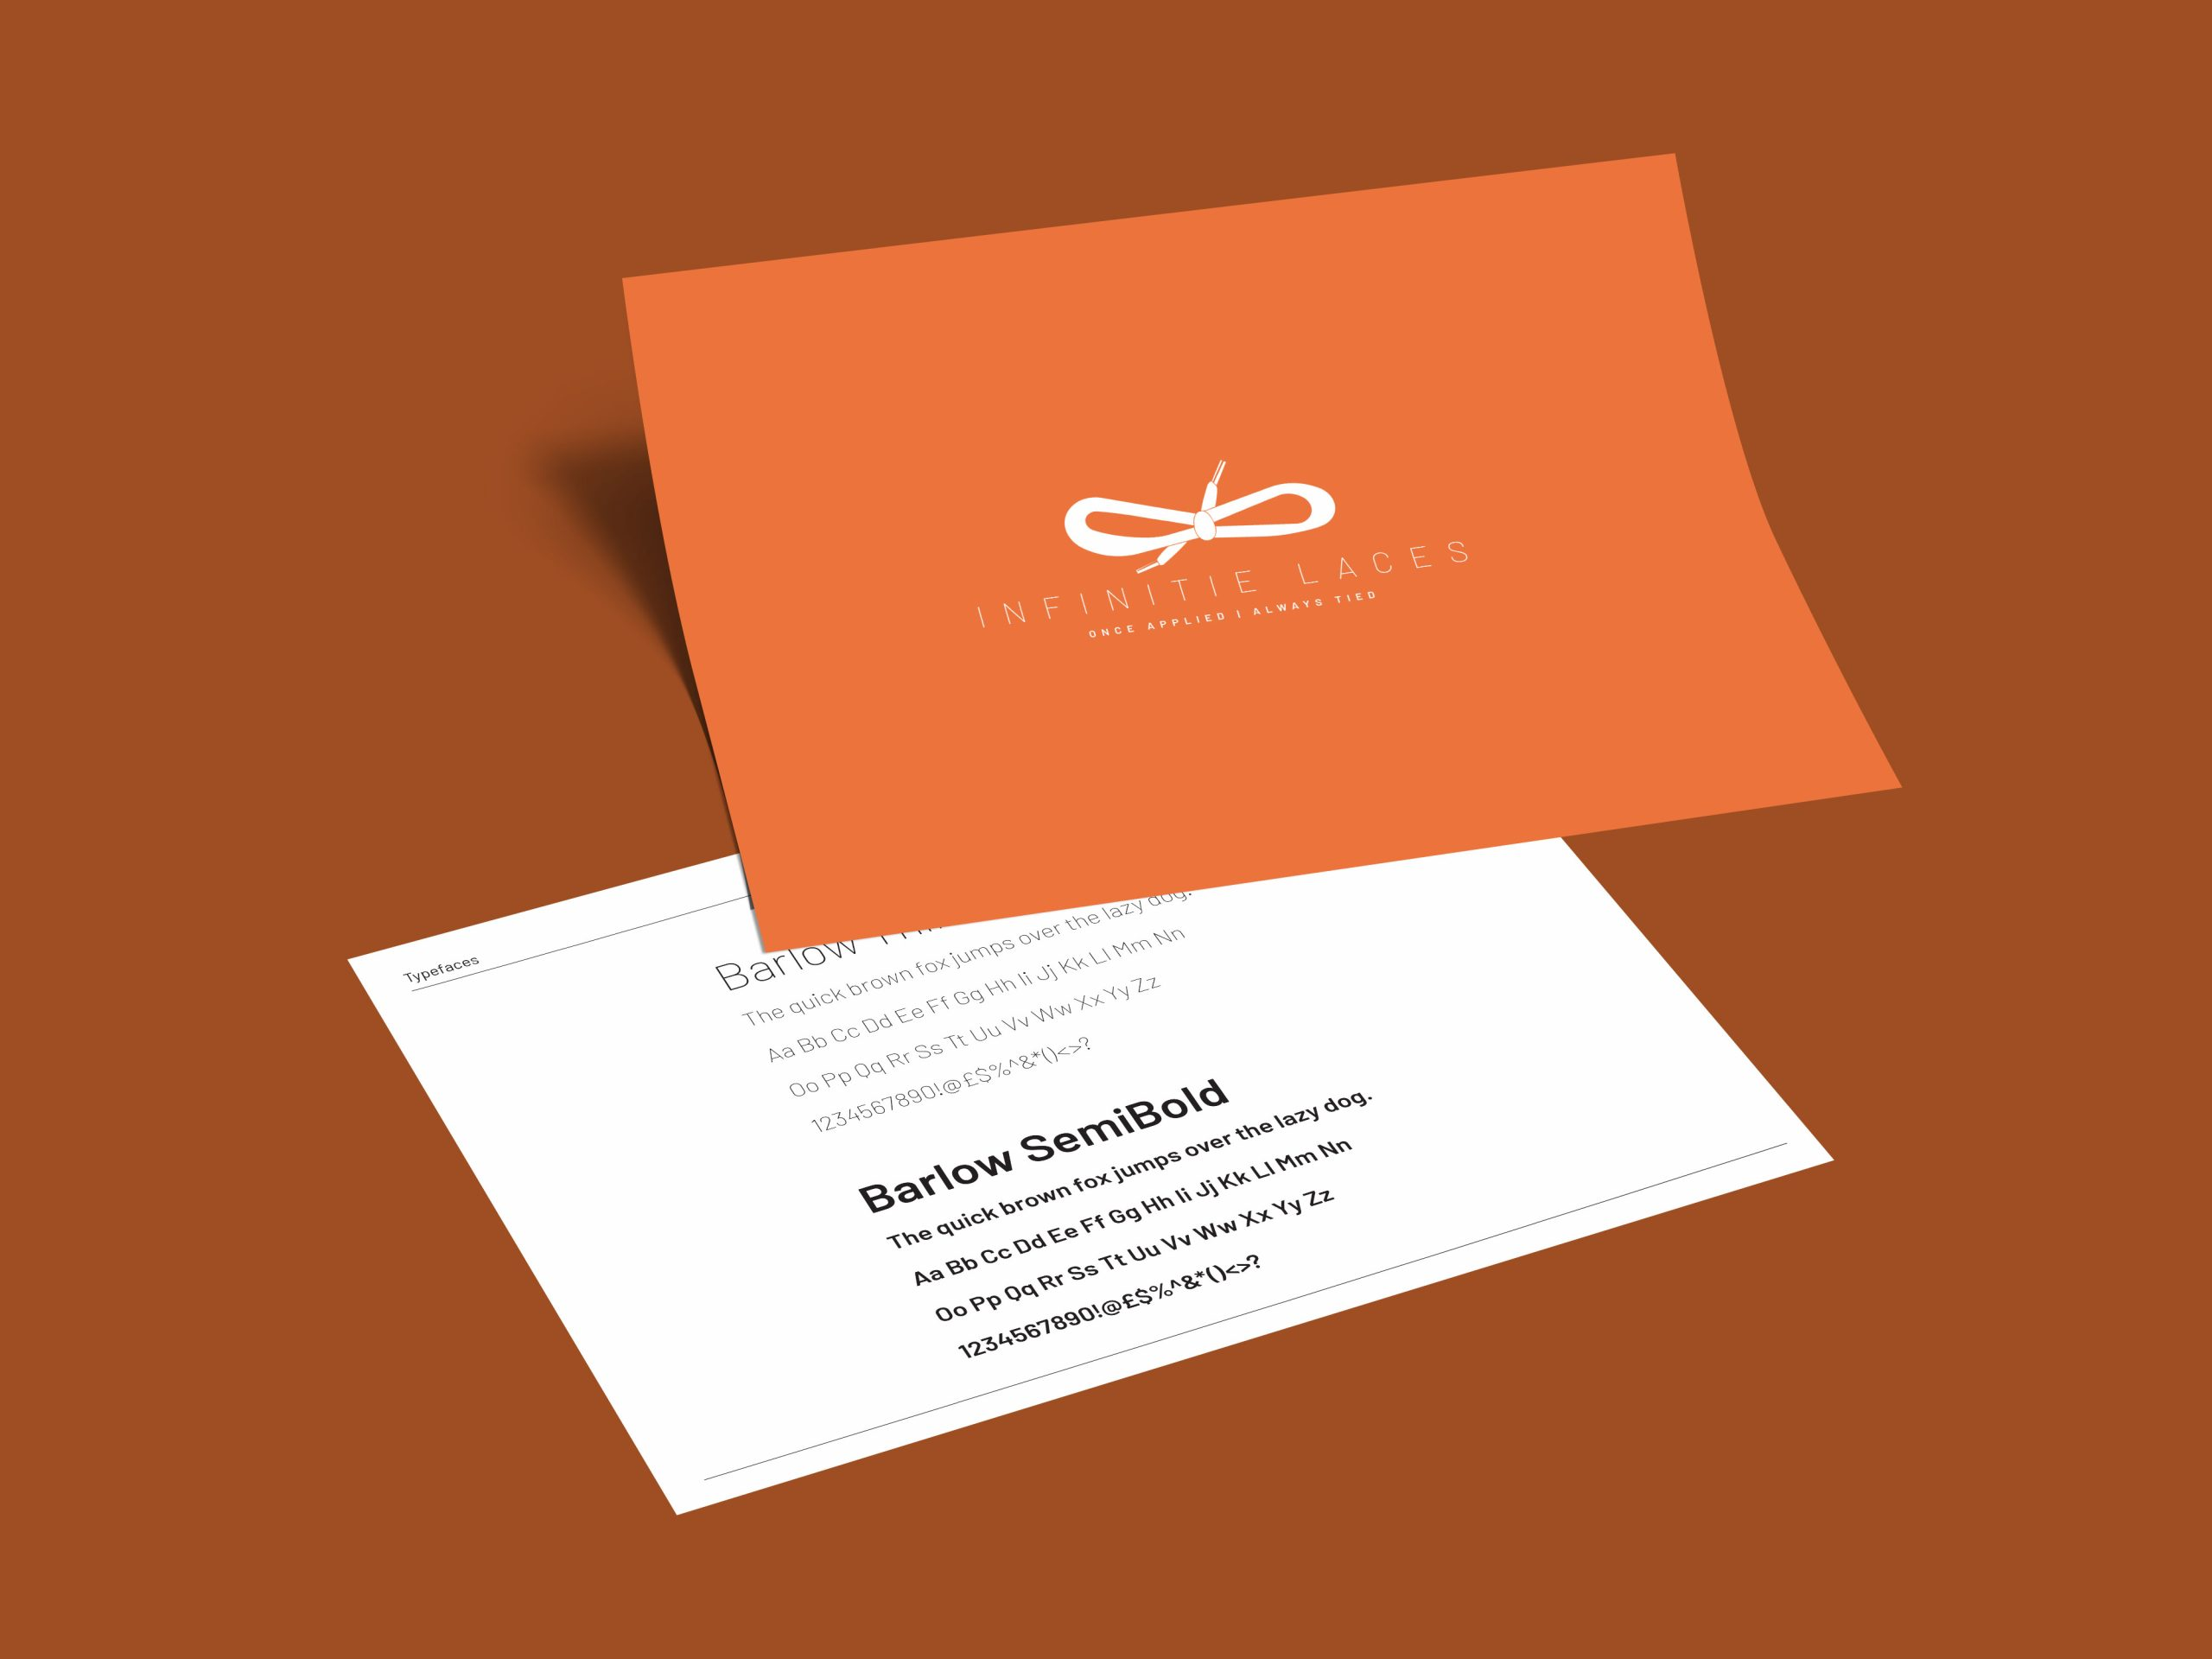 Brand Guidelines For Infinitie Laces